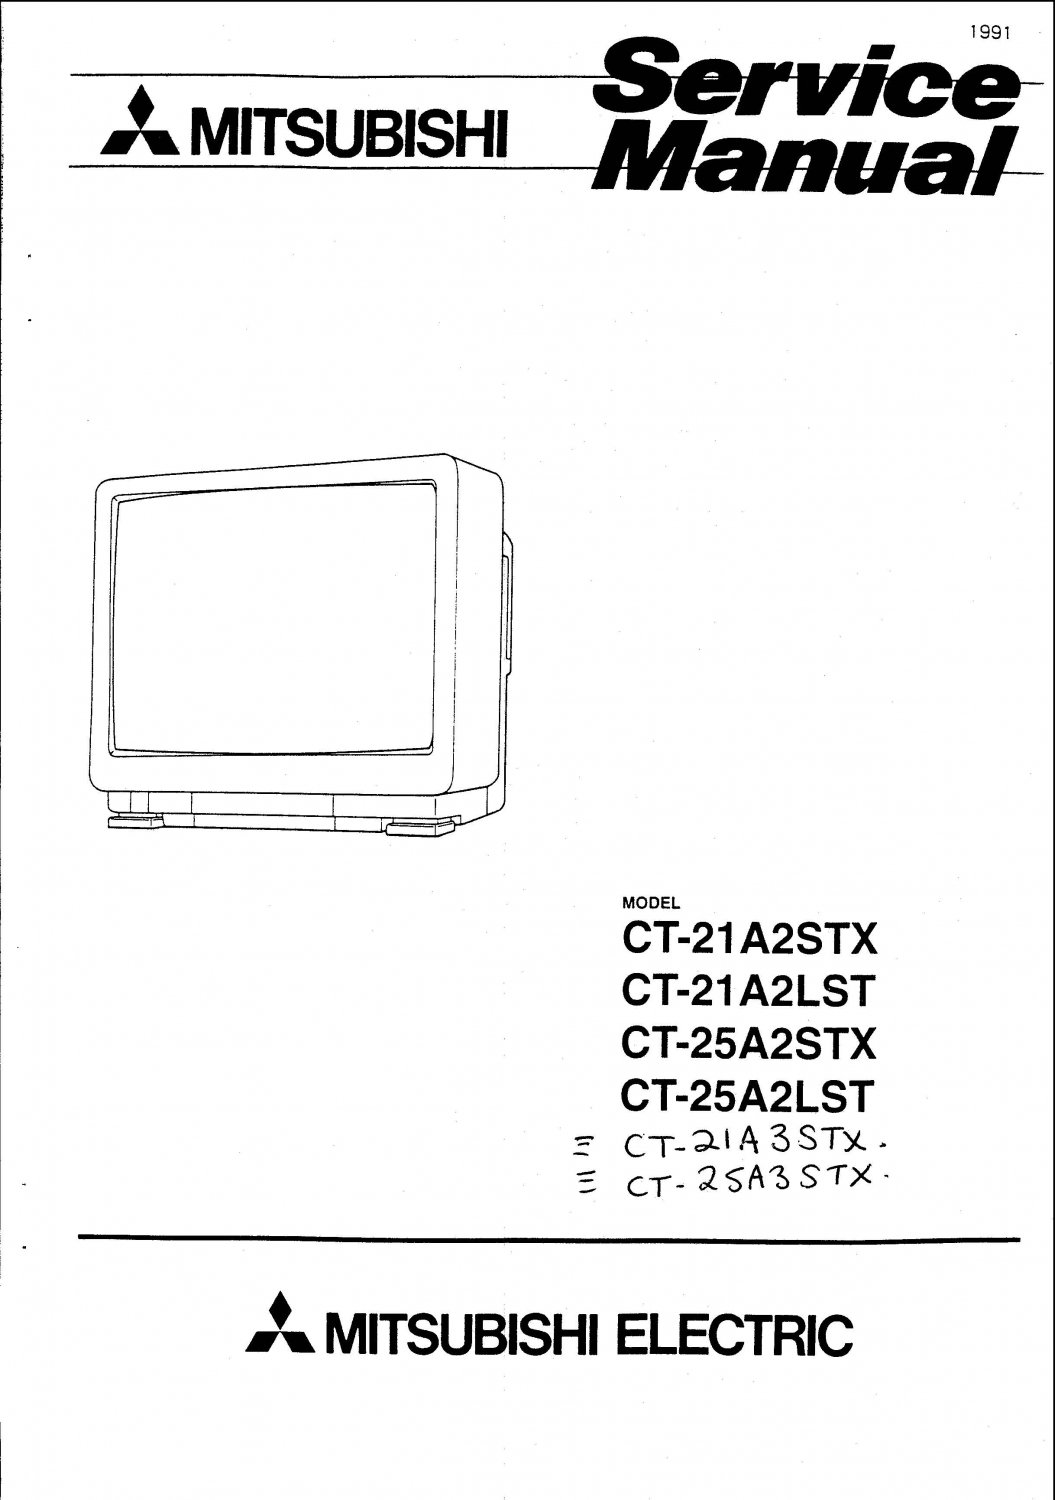 Mitsubishi CT25A2STX Television Service Manual PDF download.